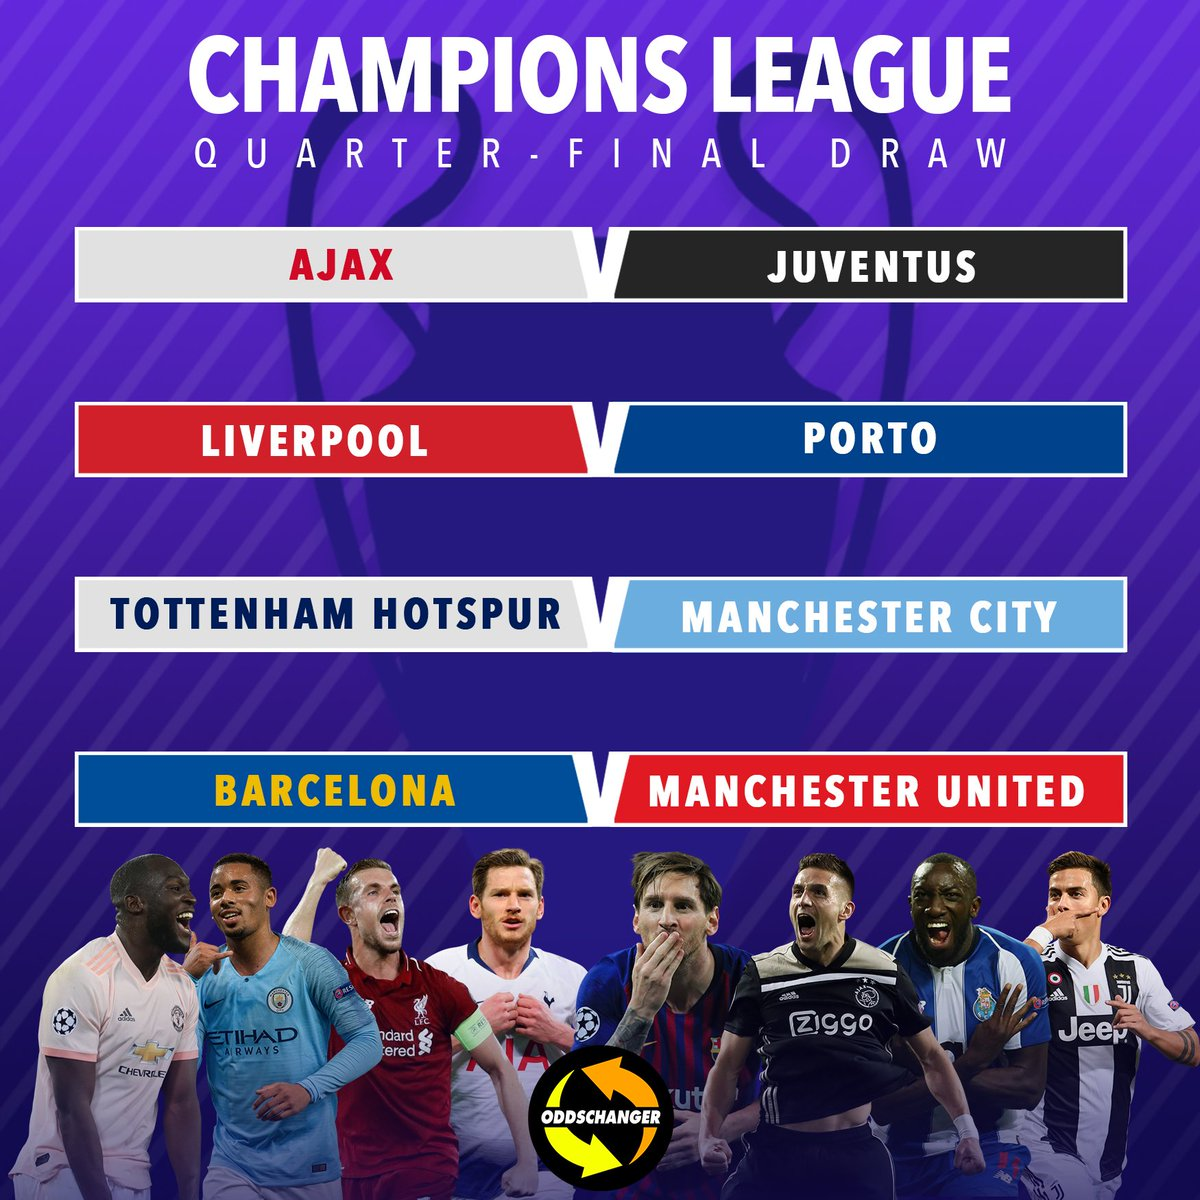 Oddschanger's photo on The Champions League